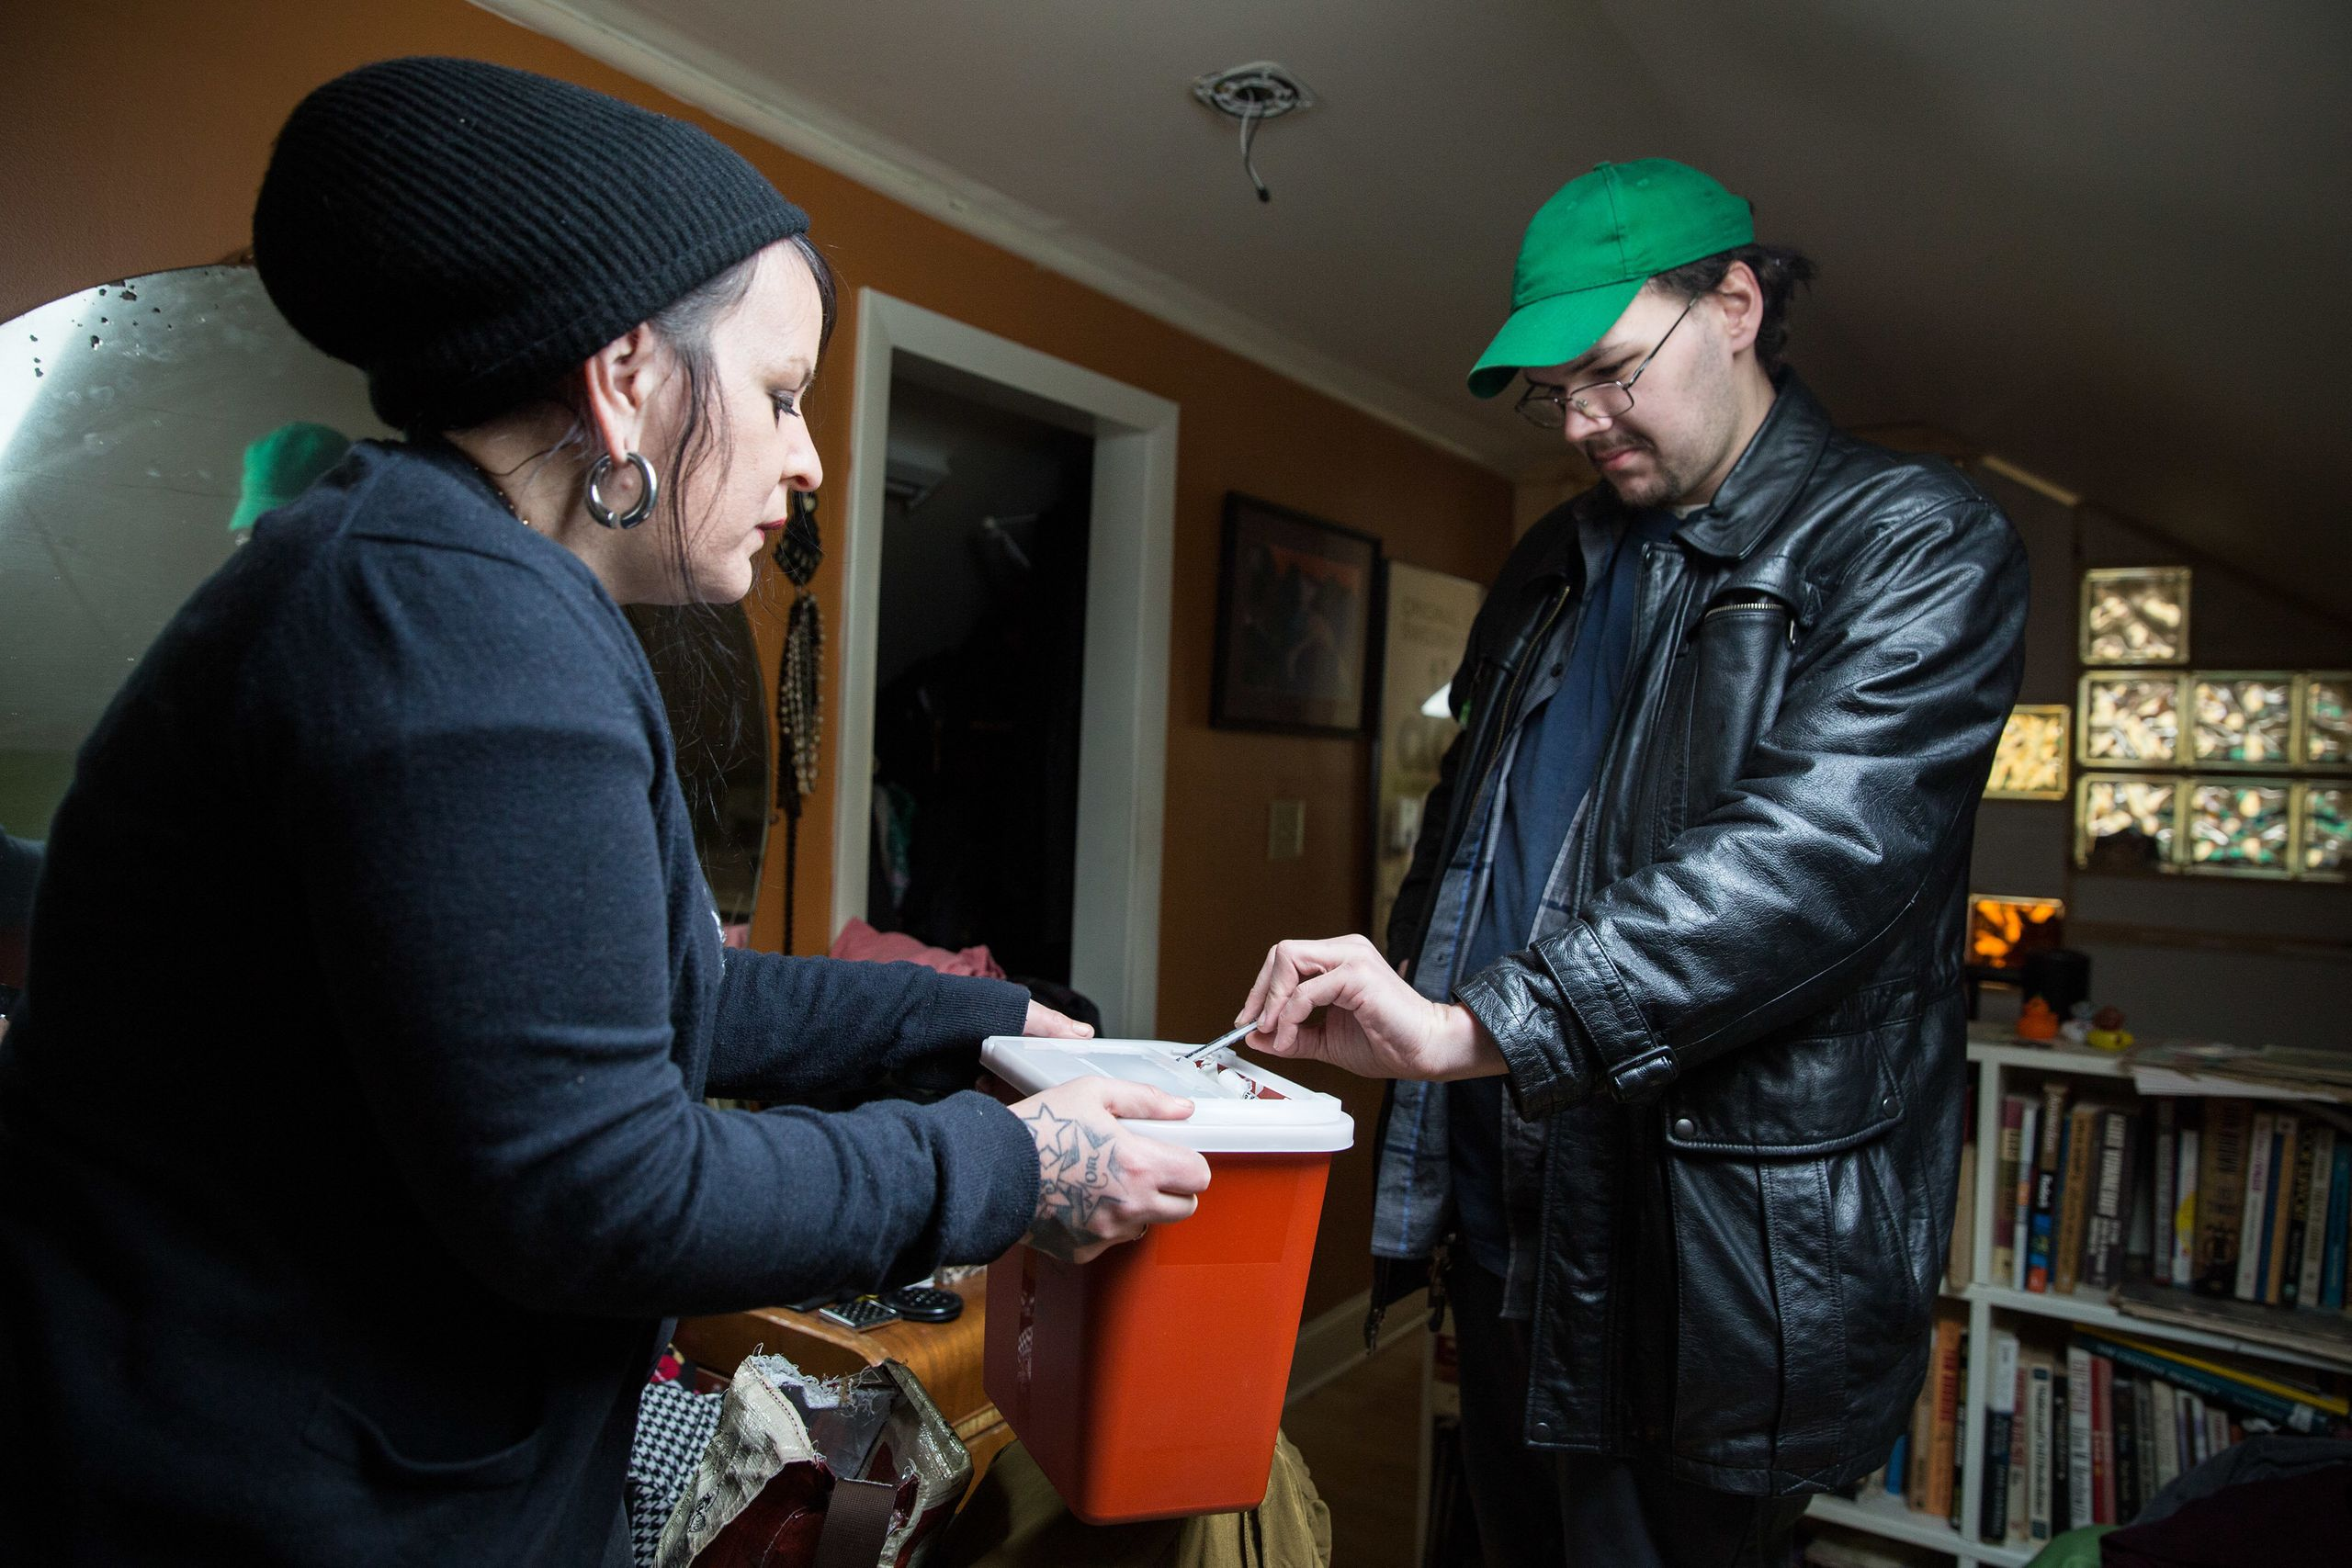 Tilley holds out a safe medical waste container for Joe Worpek todeposit his used syringes.